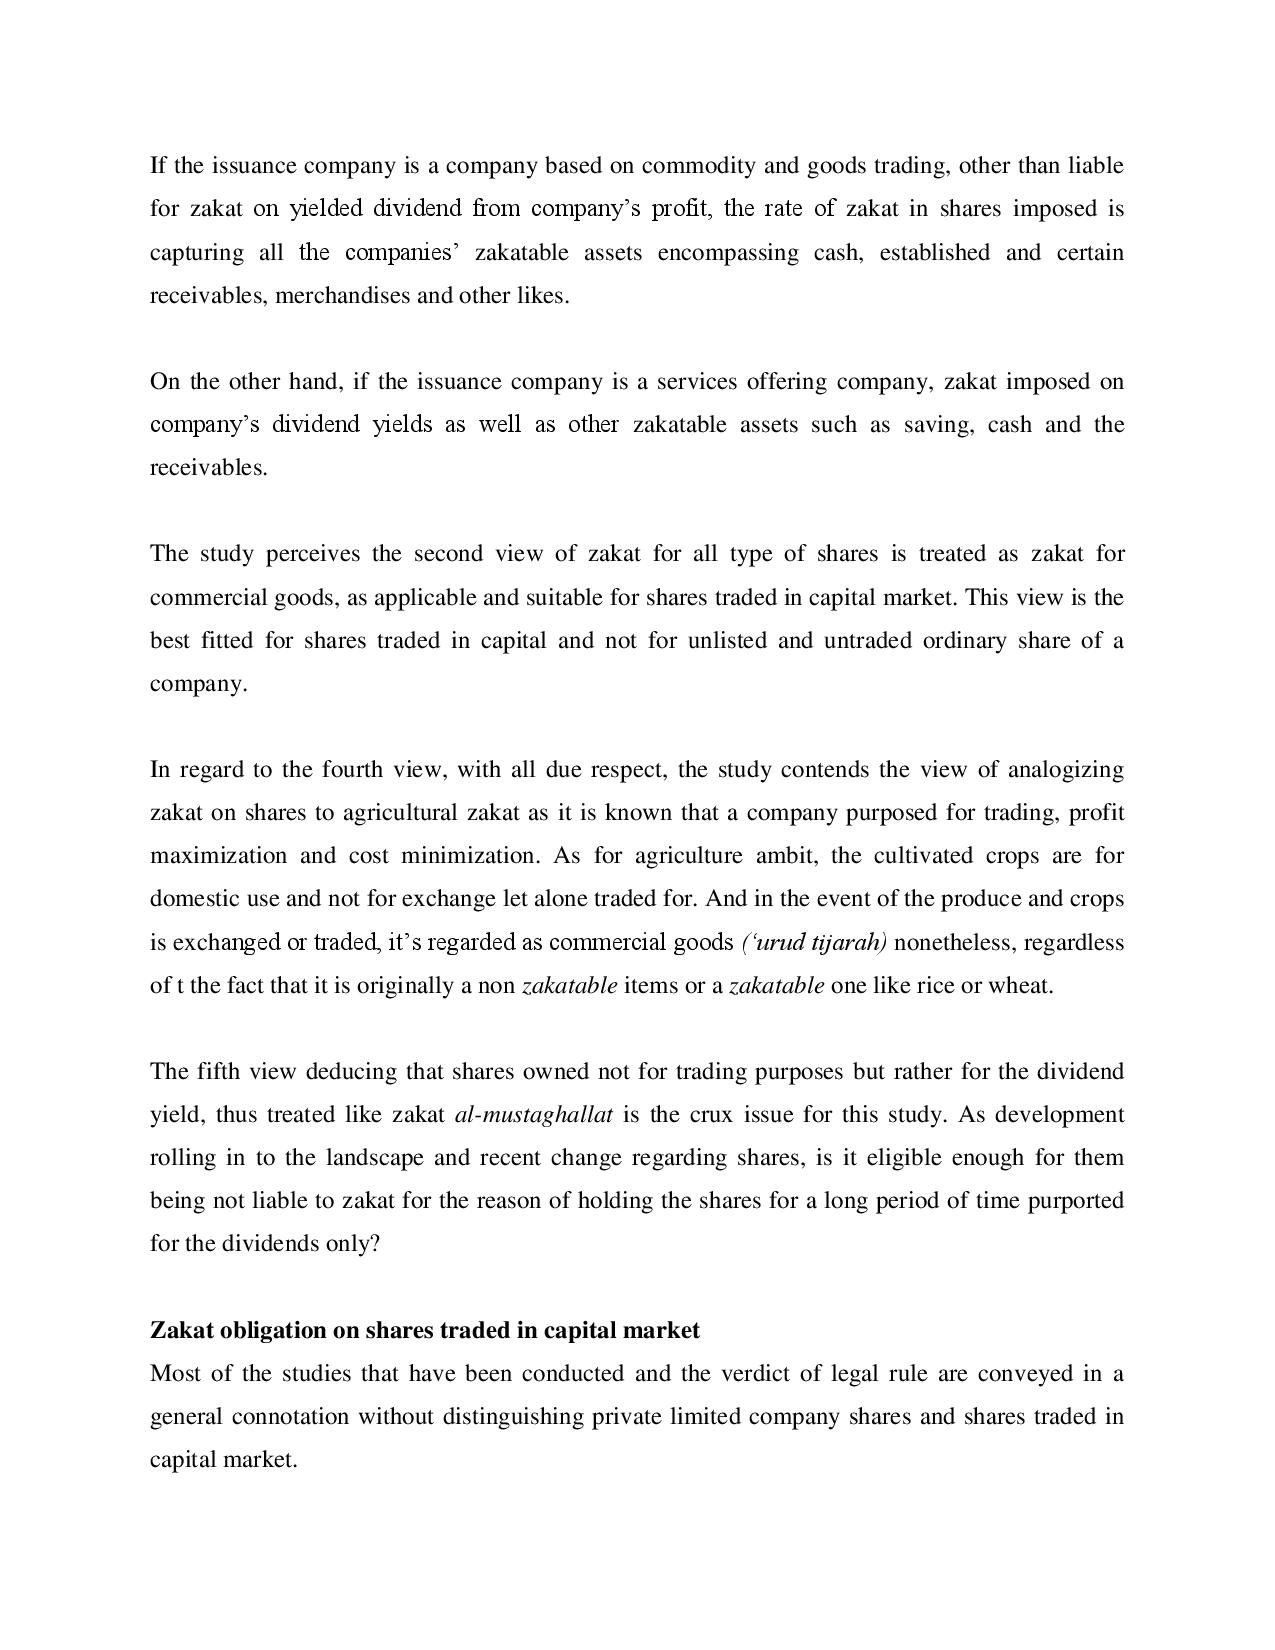 Zakat-Obligation-on-Shares-from-Shariah-Perspective-0112016-page-010